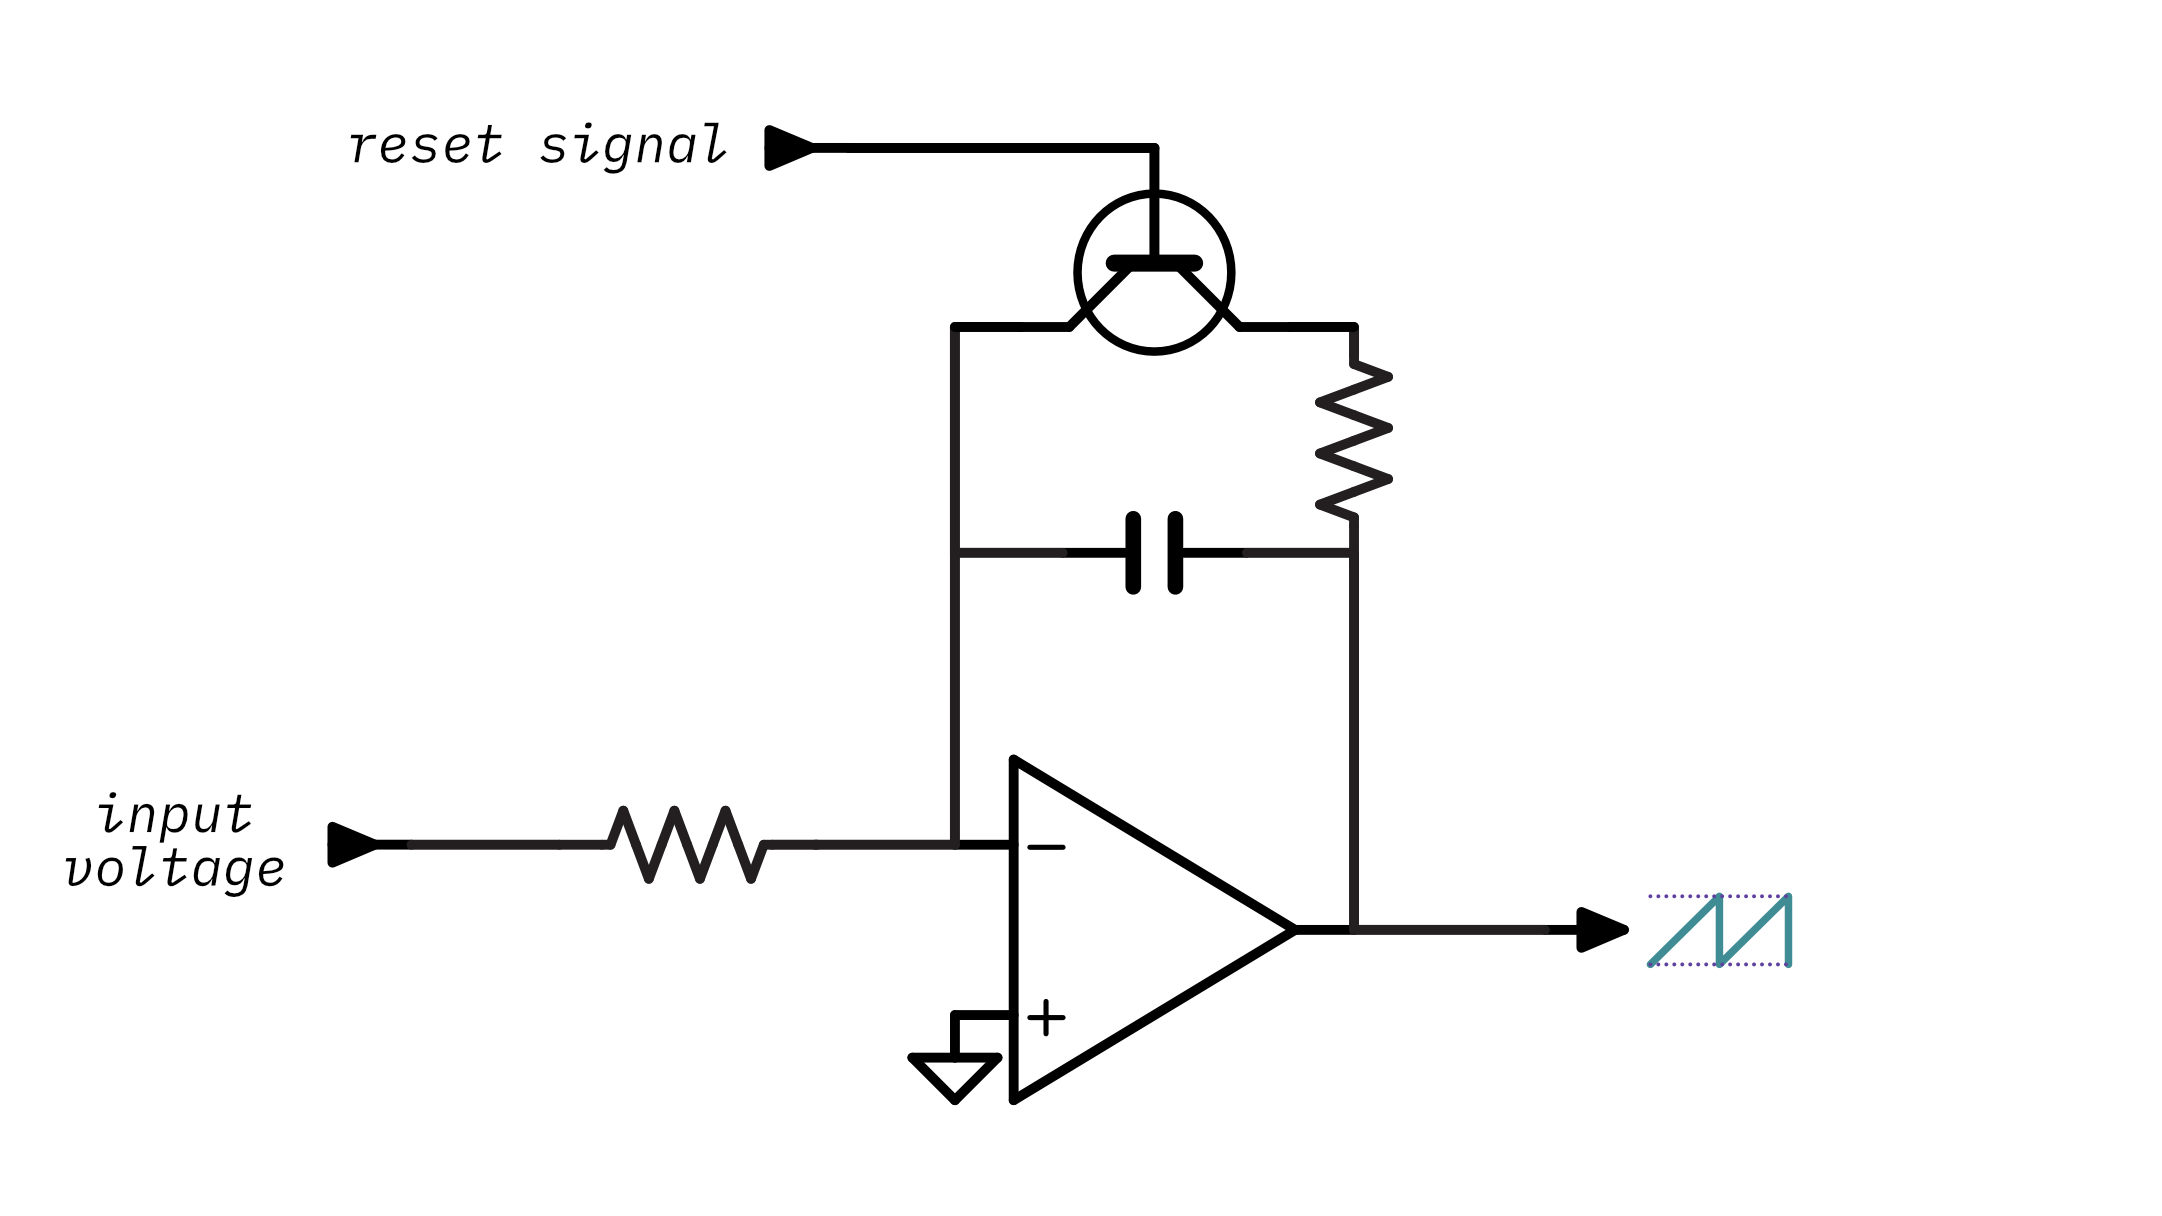 An op-amp integrator with a transistor to discharge the capacitor